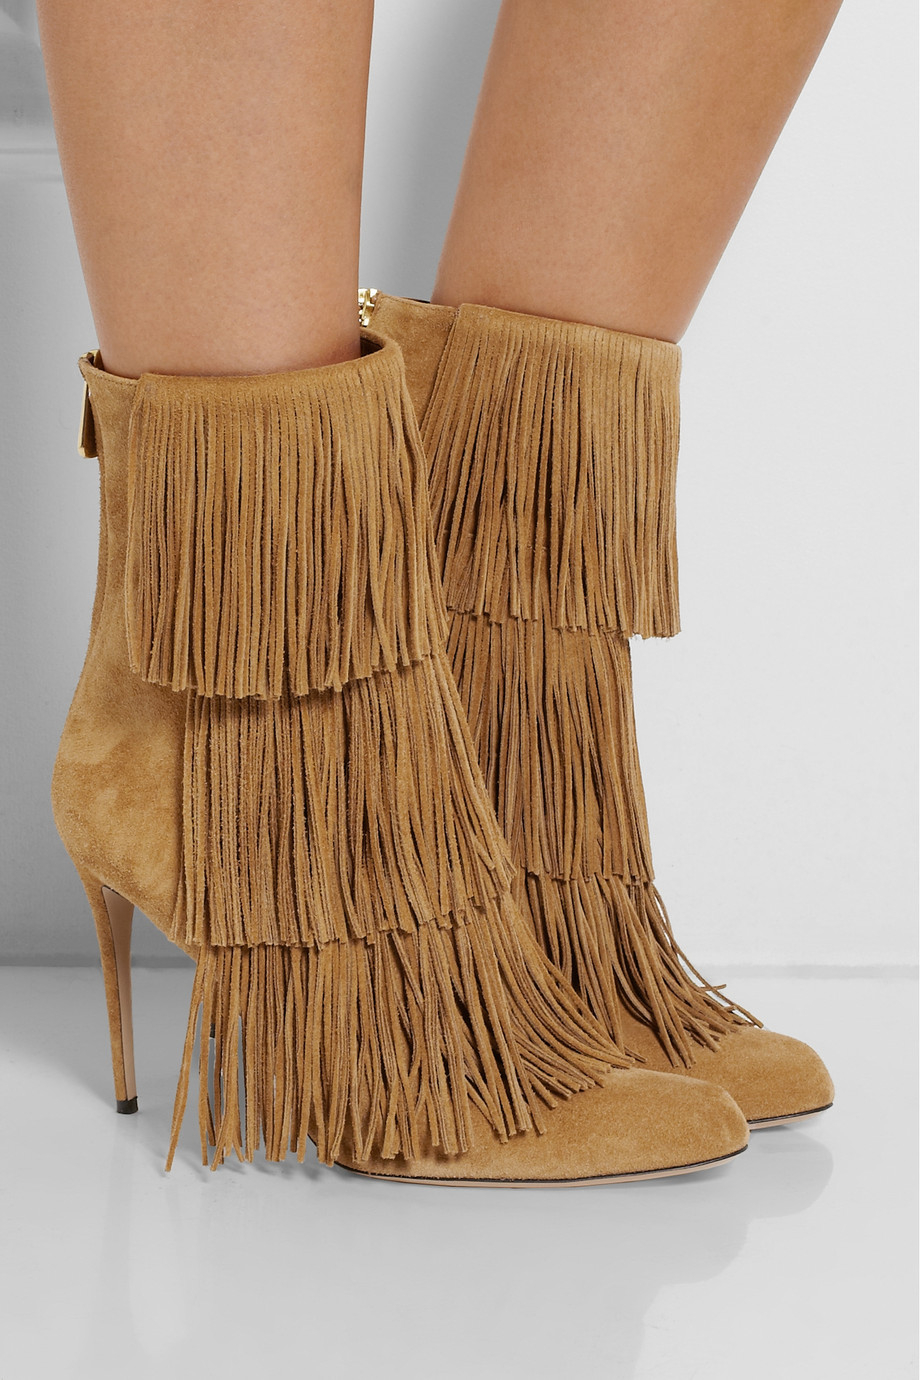 Paul andrew Taos Fringed Suede Ankle Boots in Brown | Lyst